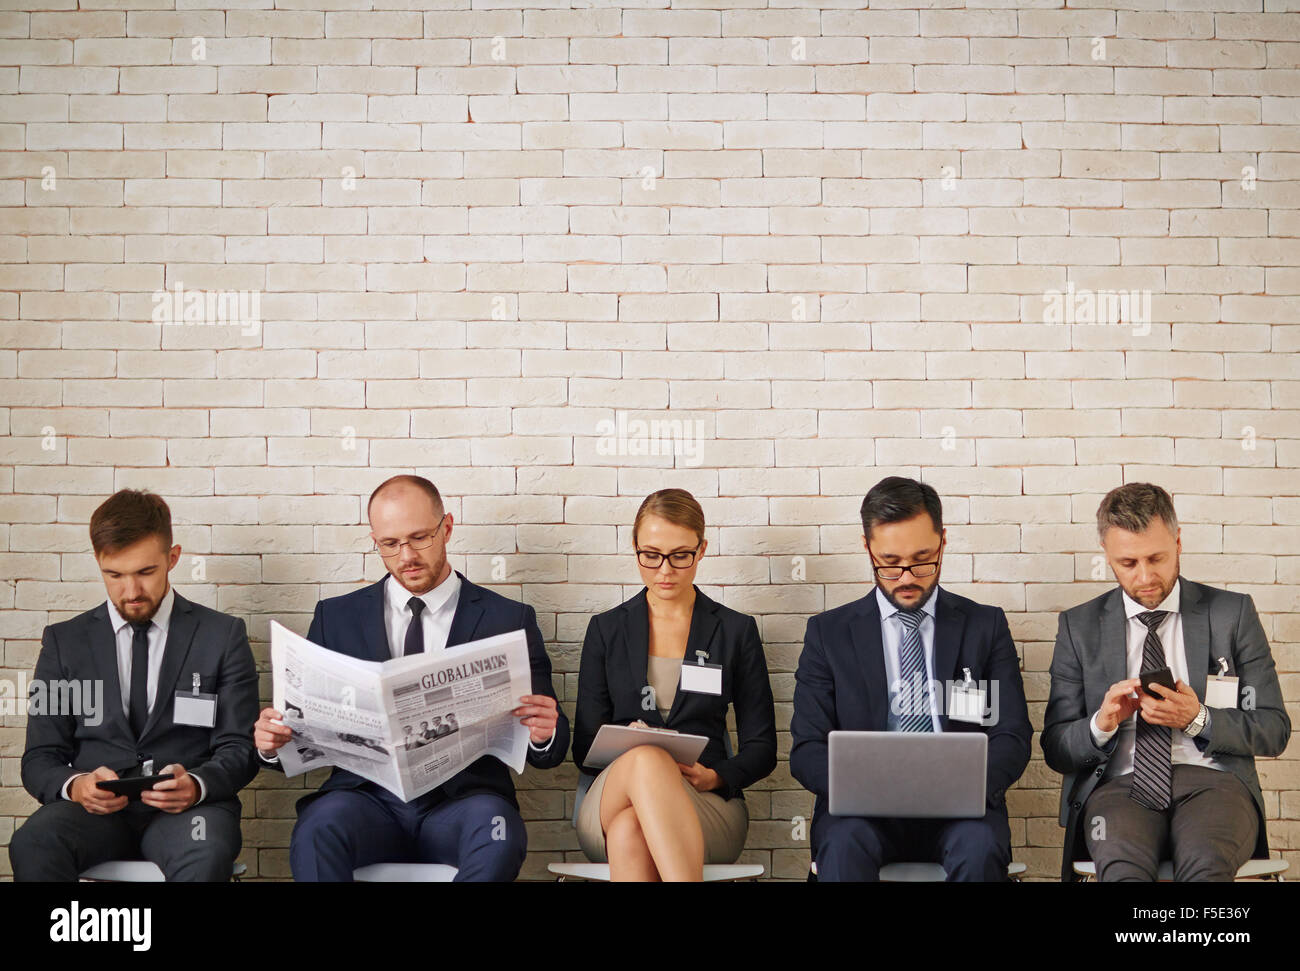 Well-dressed business people waiting for their turn to interview - Stock Image